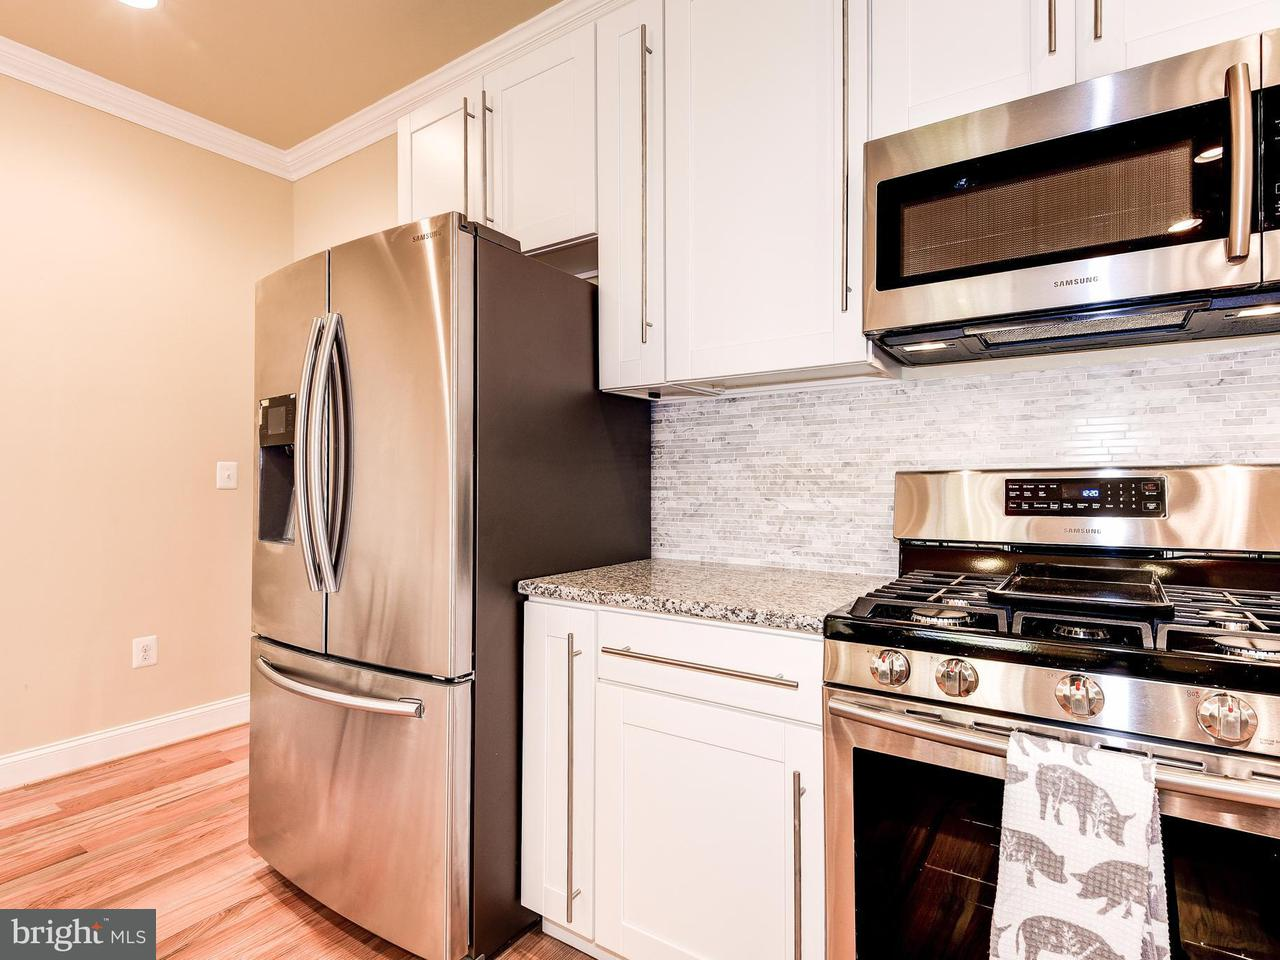 Additional photo for property listing at 1926 1st St Nw #1 1926 1st St Nw #1 Washington, District Of Columbia 20001 Vereinigte Staaten